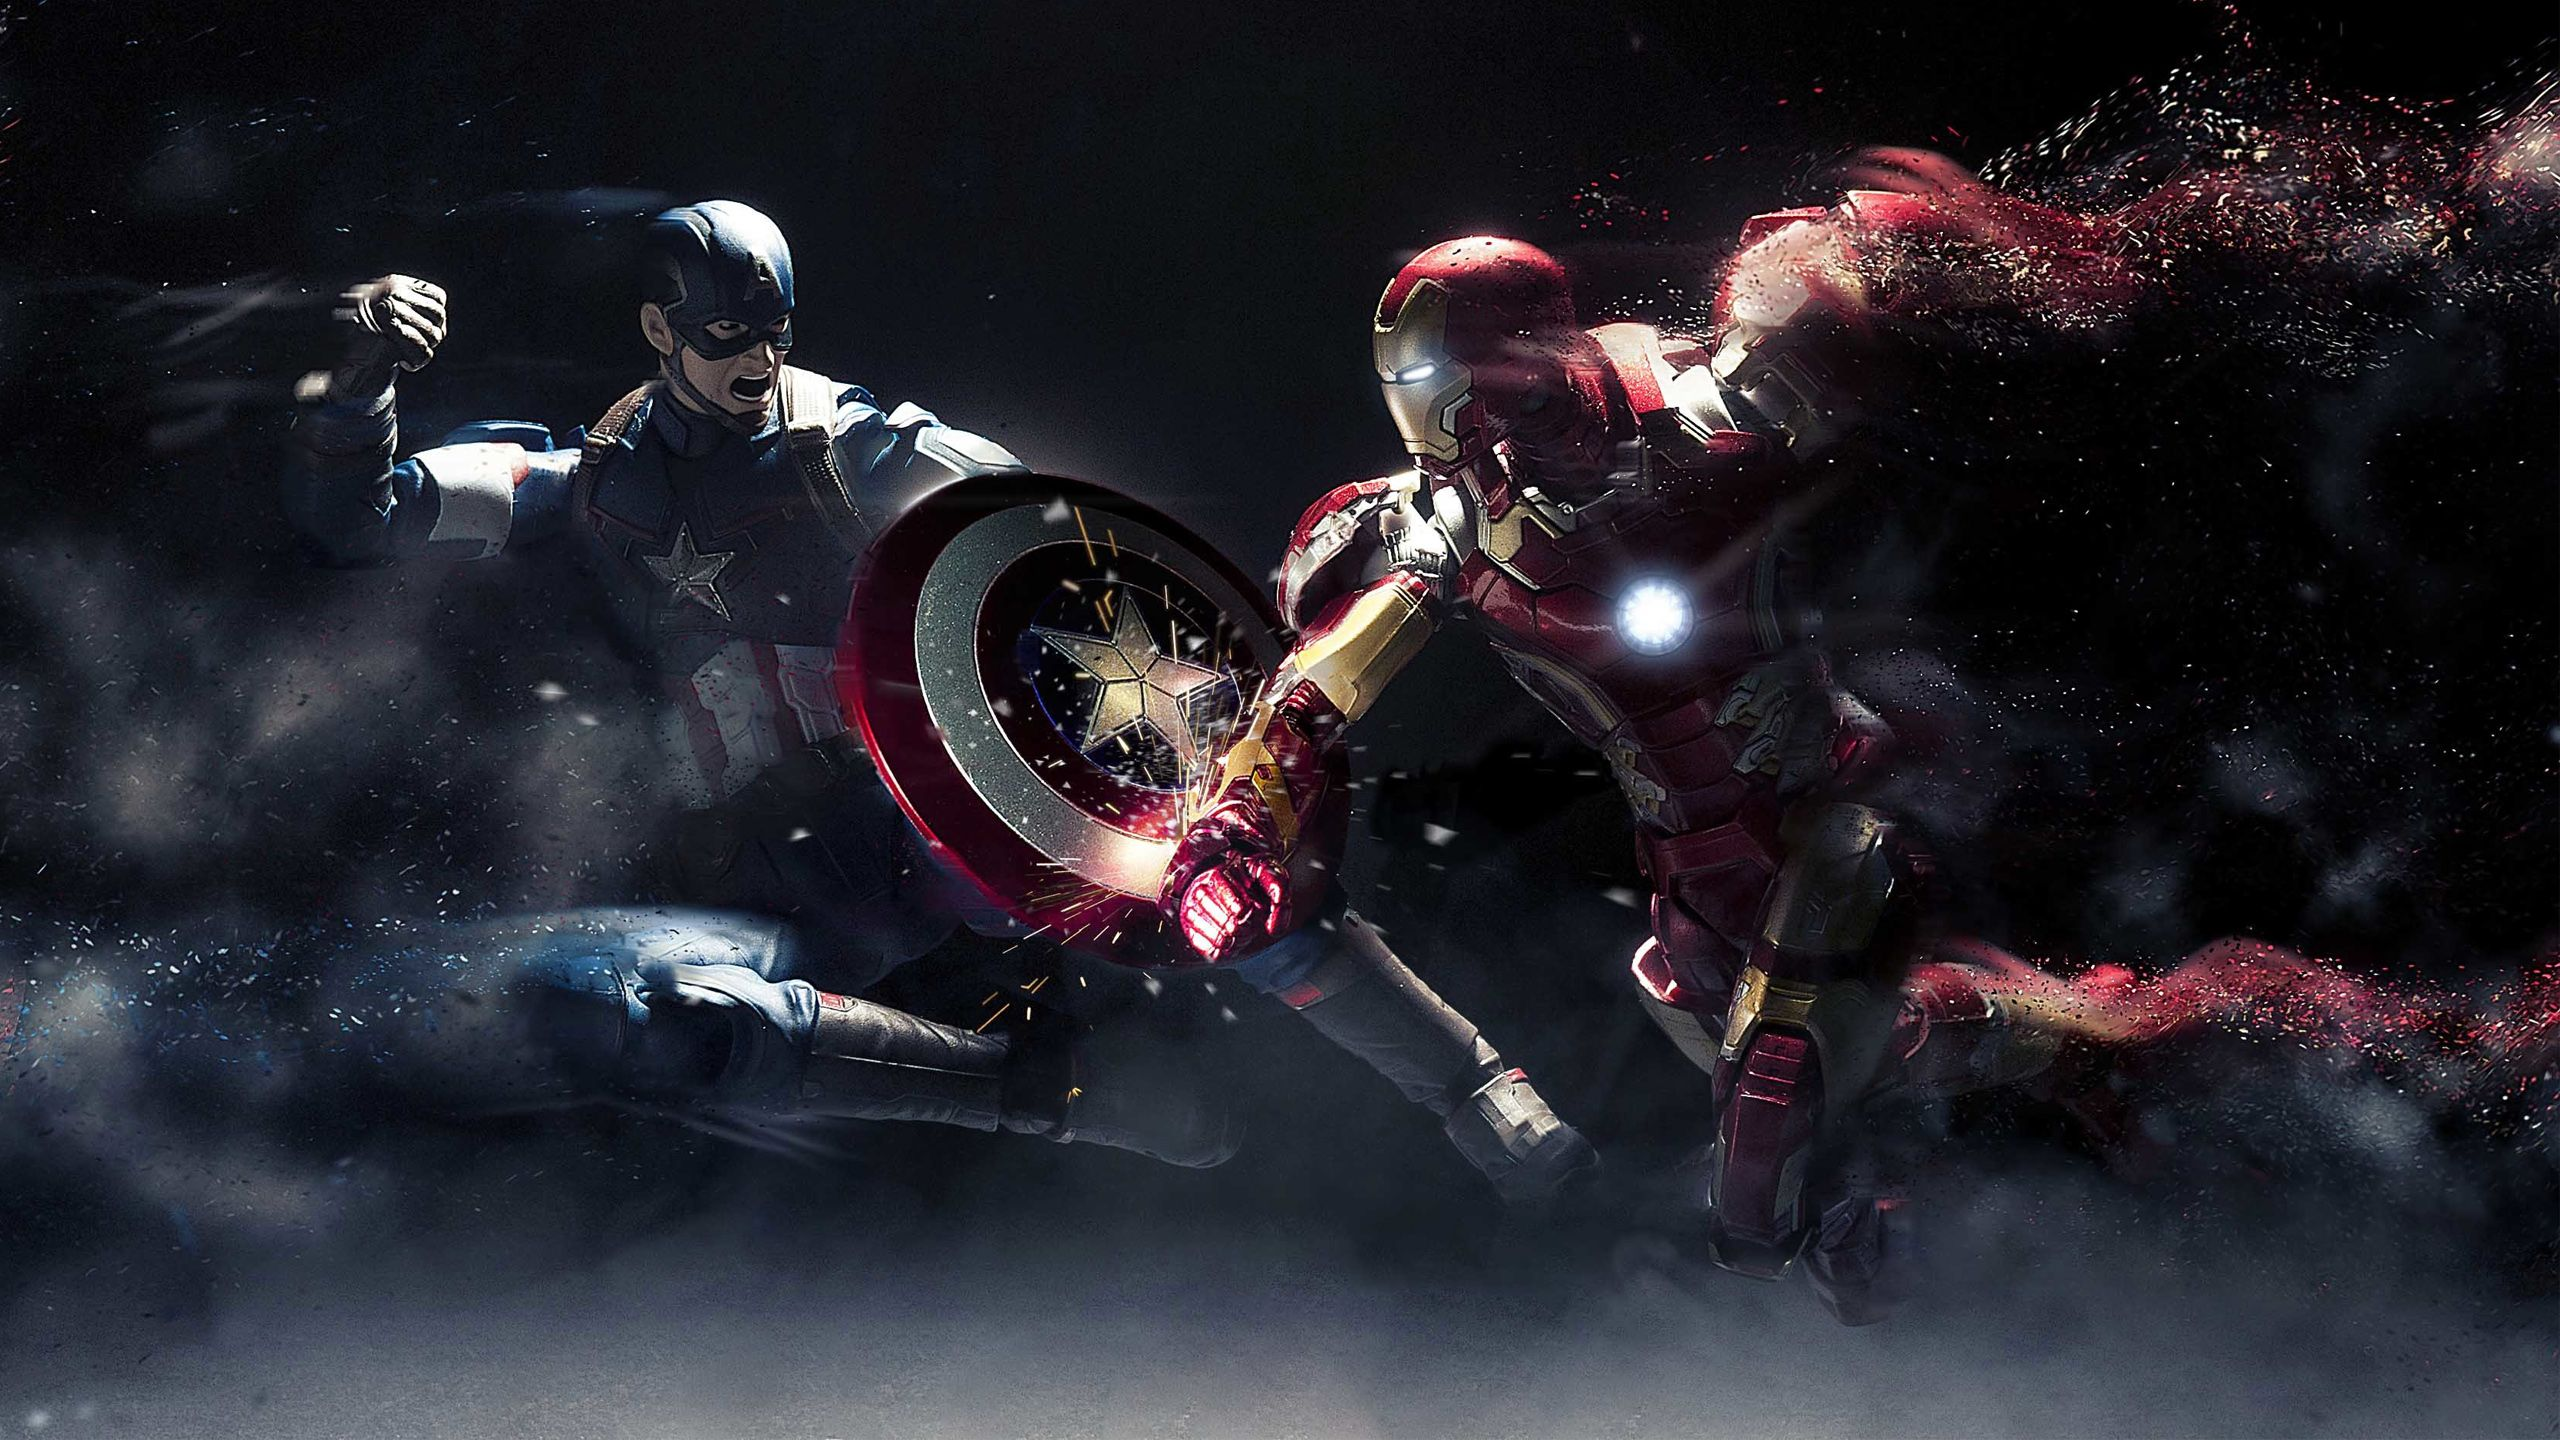 Captain America Wallpaper 4k For Pc Iphone Wallpaper Center 01 In 2020 Captain America Wallpaper Iron Man Wallpaper 4k Wallpapers For Pc